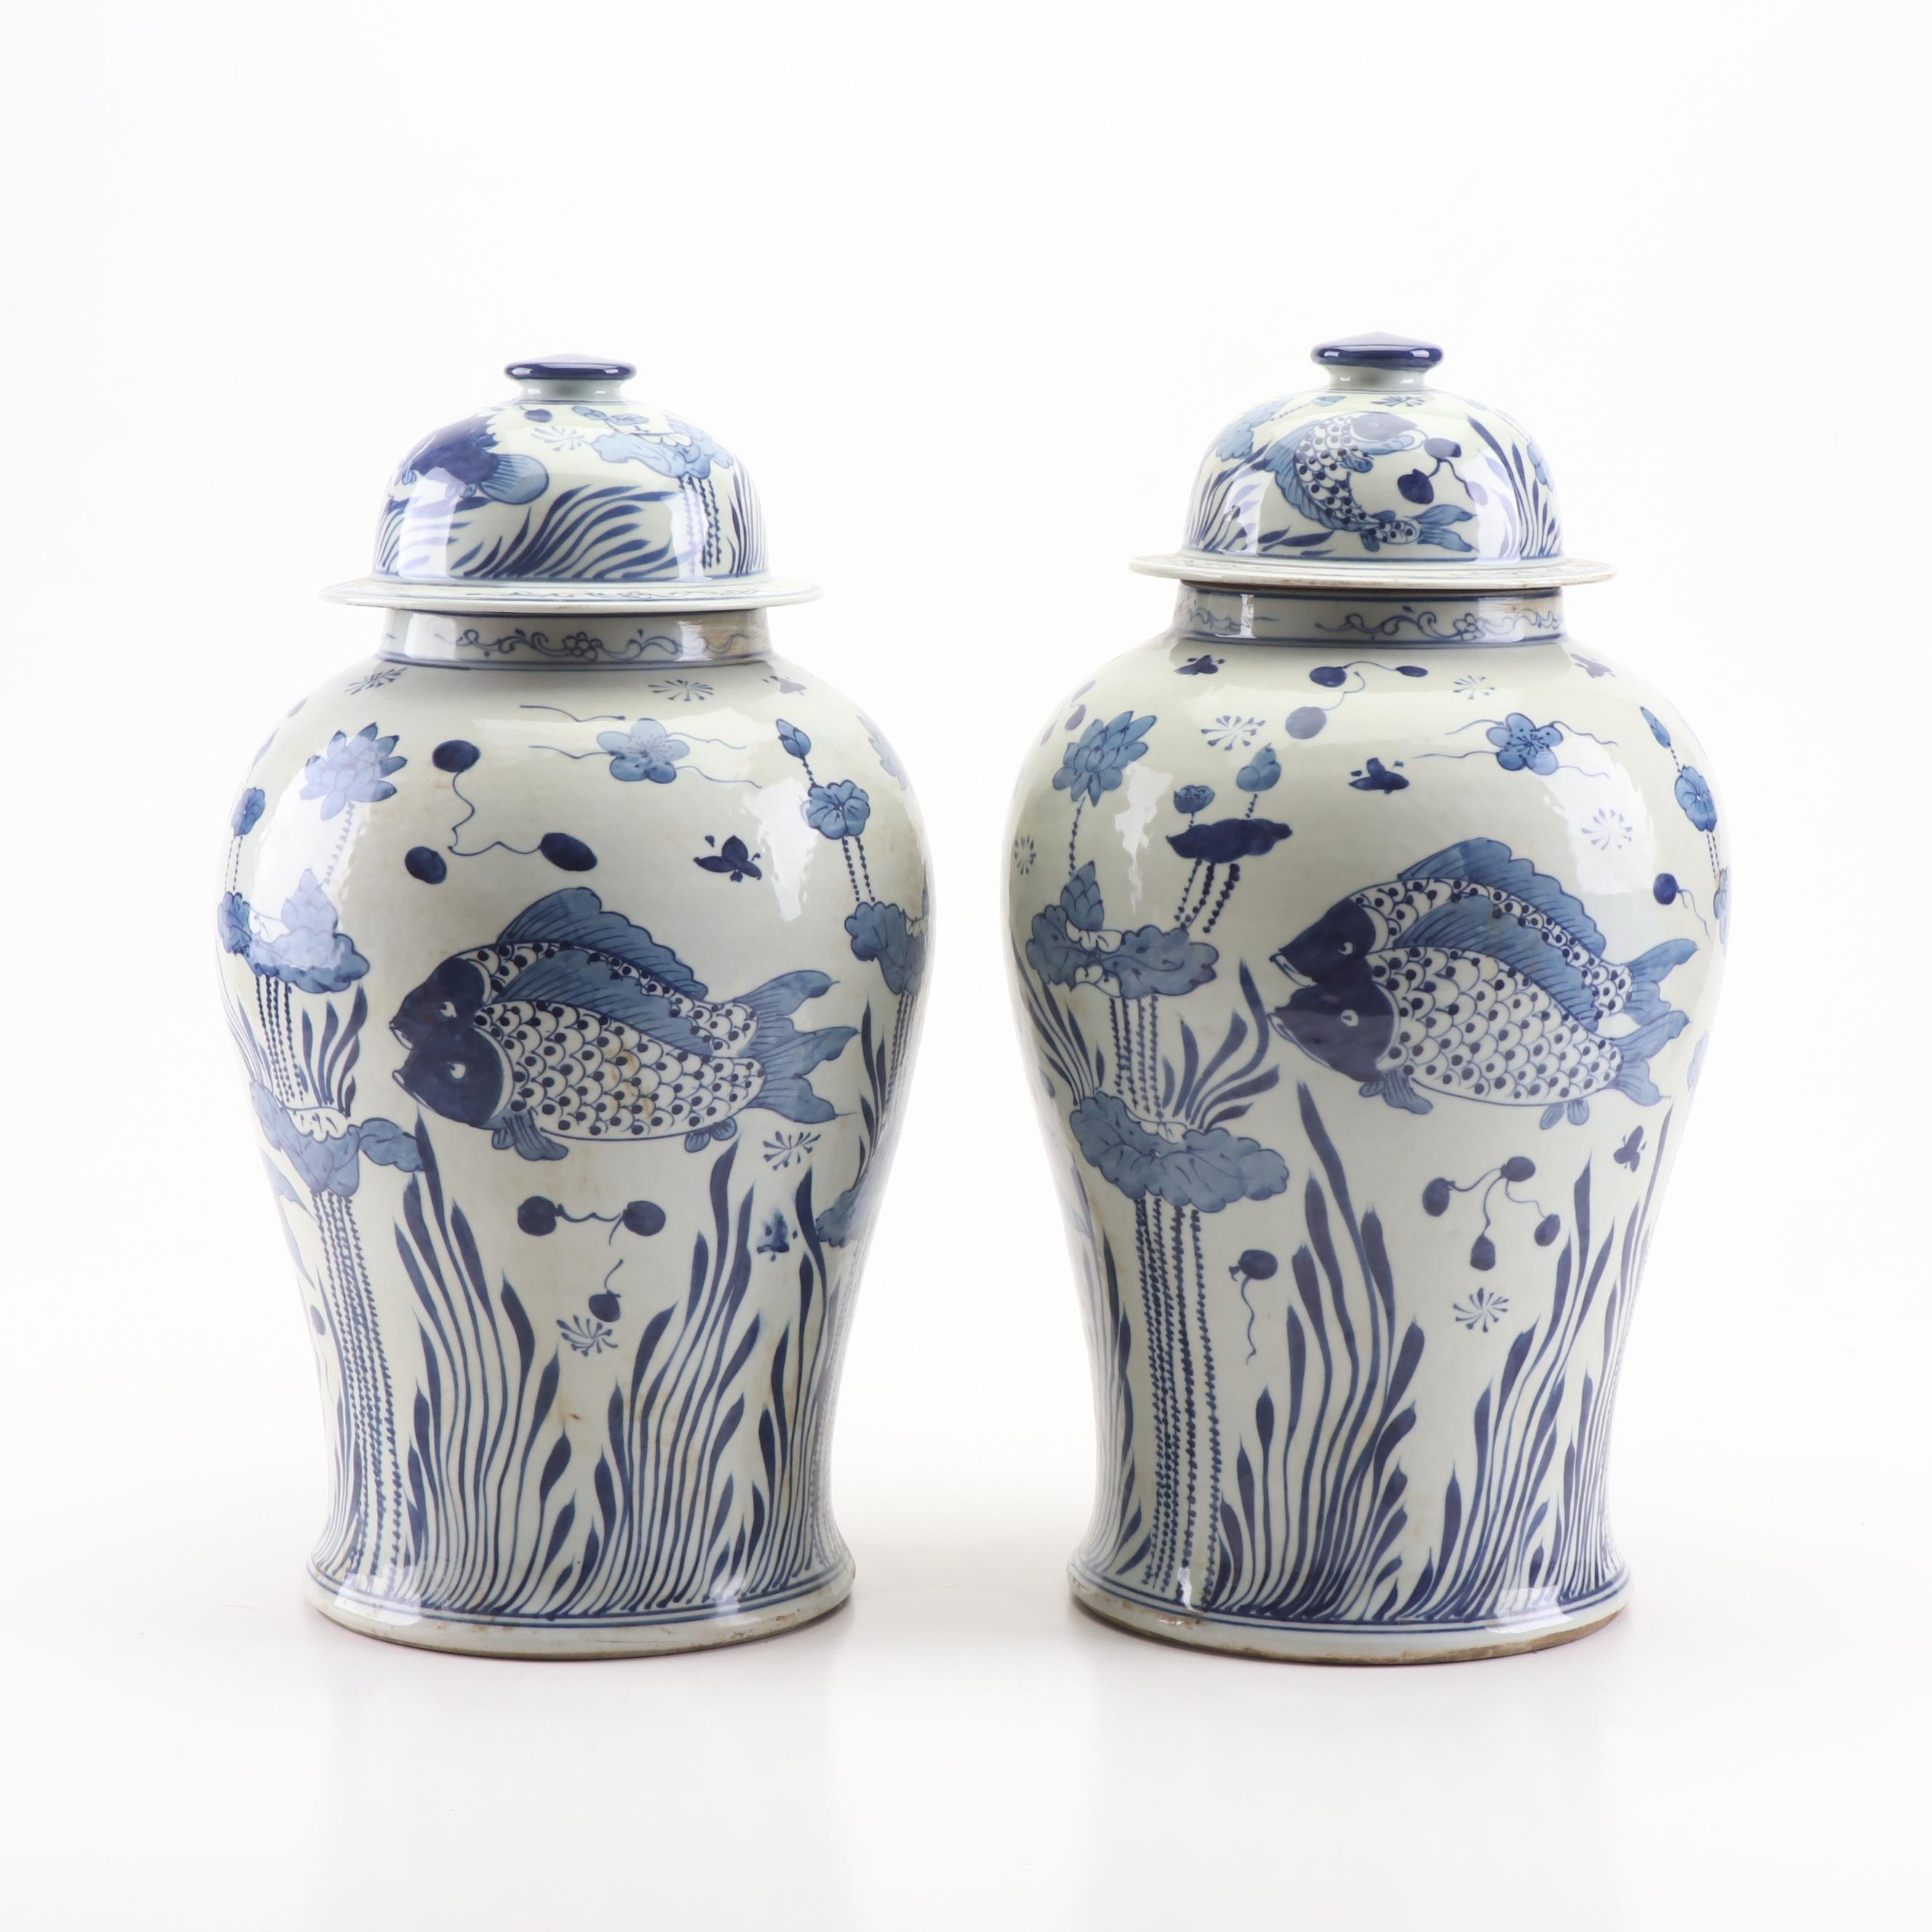 Chinese Blue and White Ceramic Ginger Jars with Carp Design